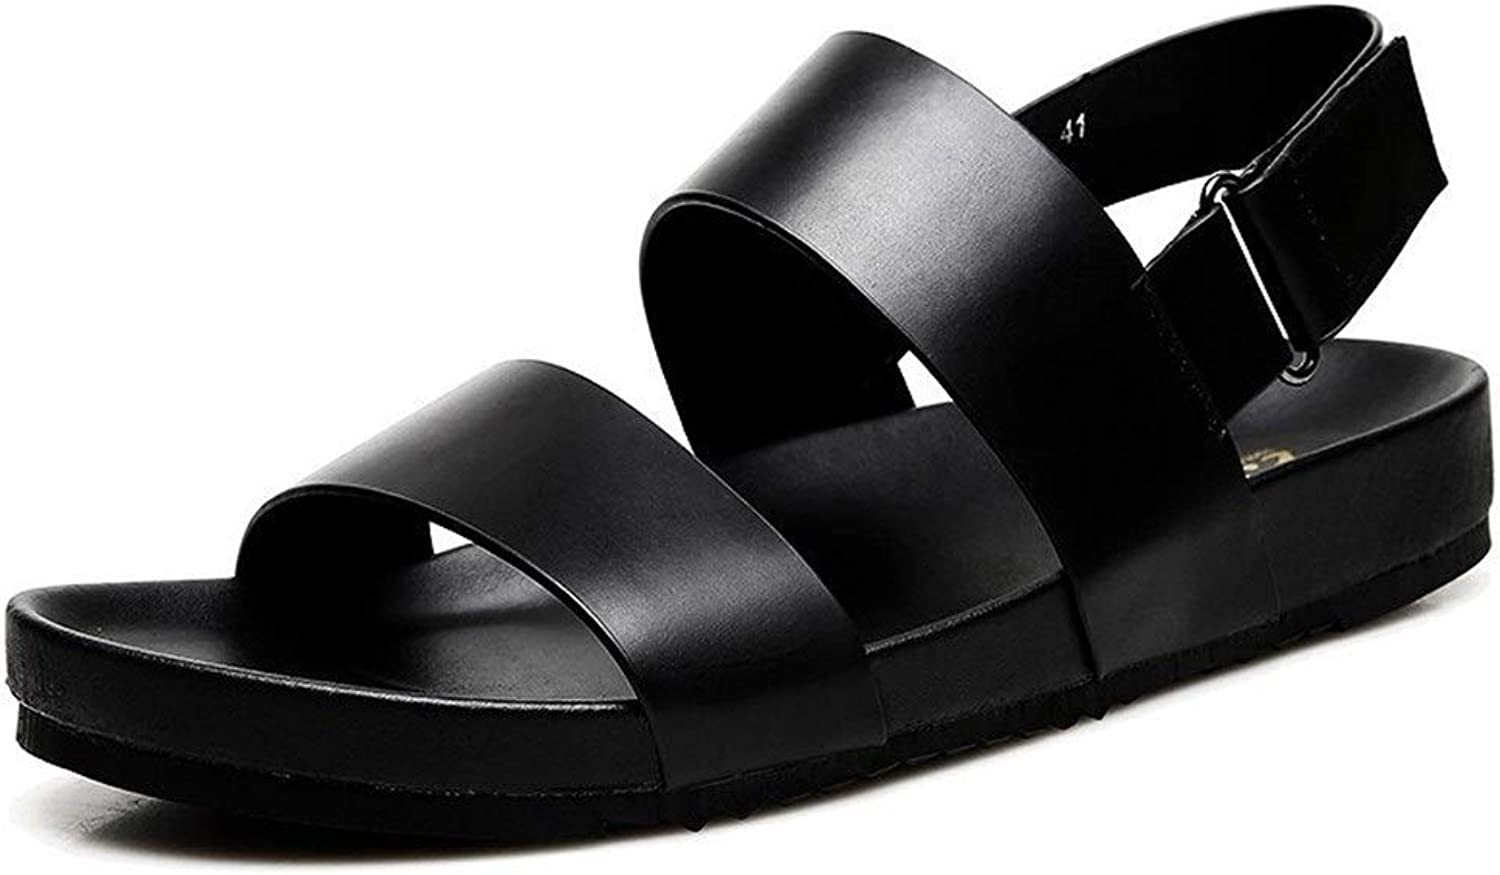 Men's Sandals and Slippers, Leather Summer Casual Beach shoes   Open Toe Slippers   Leather Upper   EVA Plastic Non-Slip Sole (color   Black, Size   41EU)